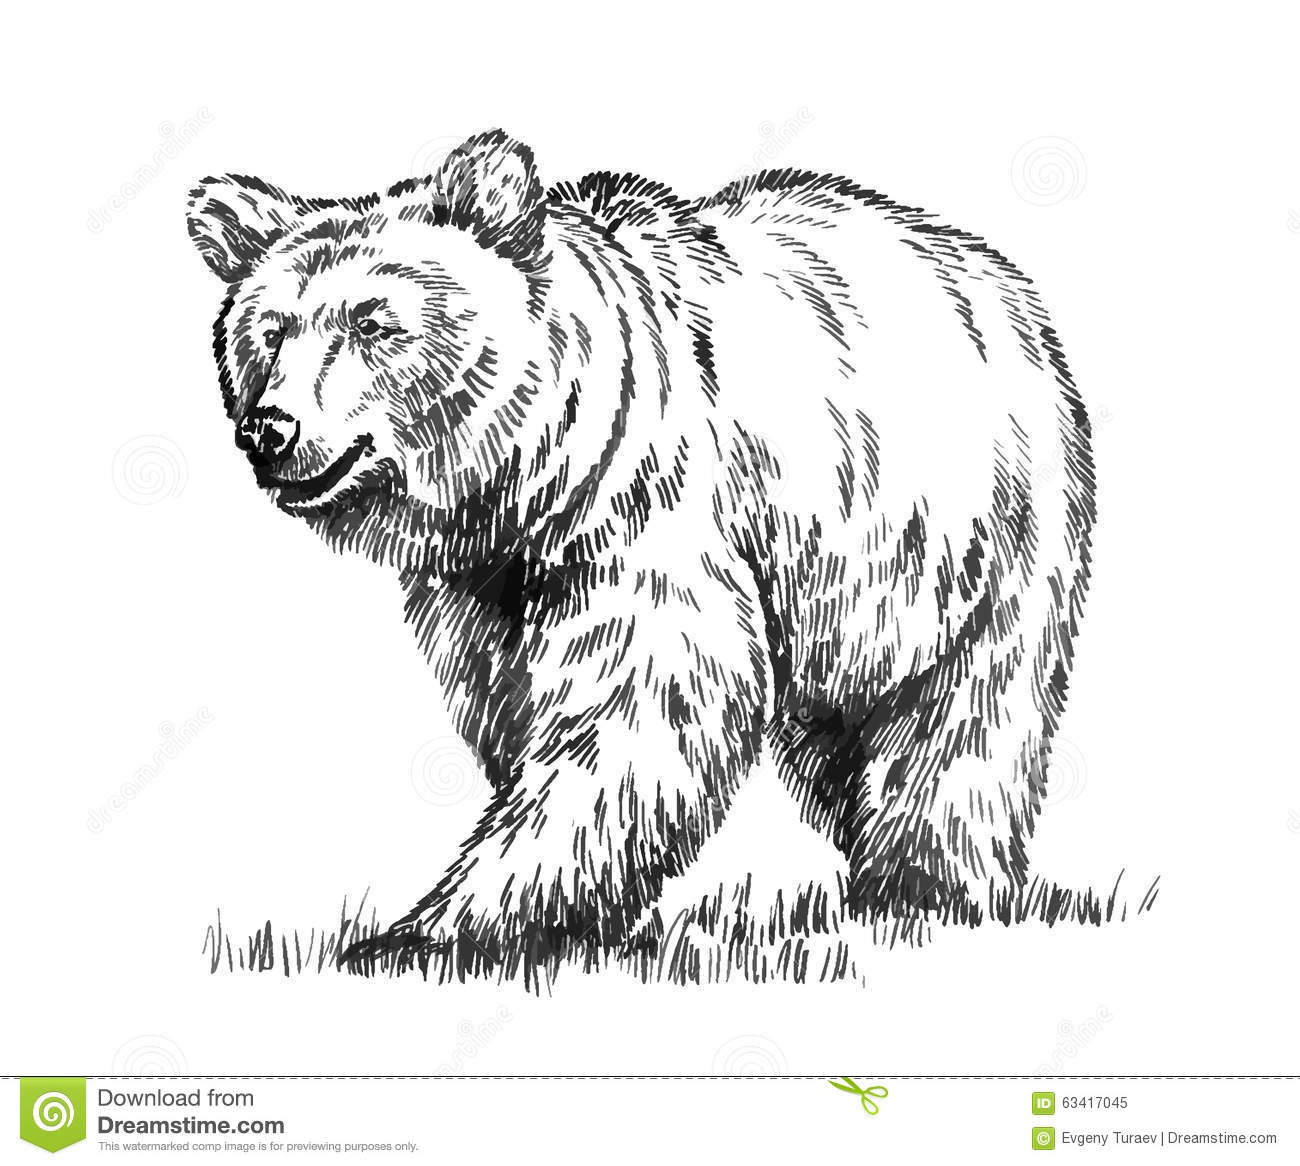 how to draw a black bear easy